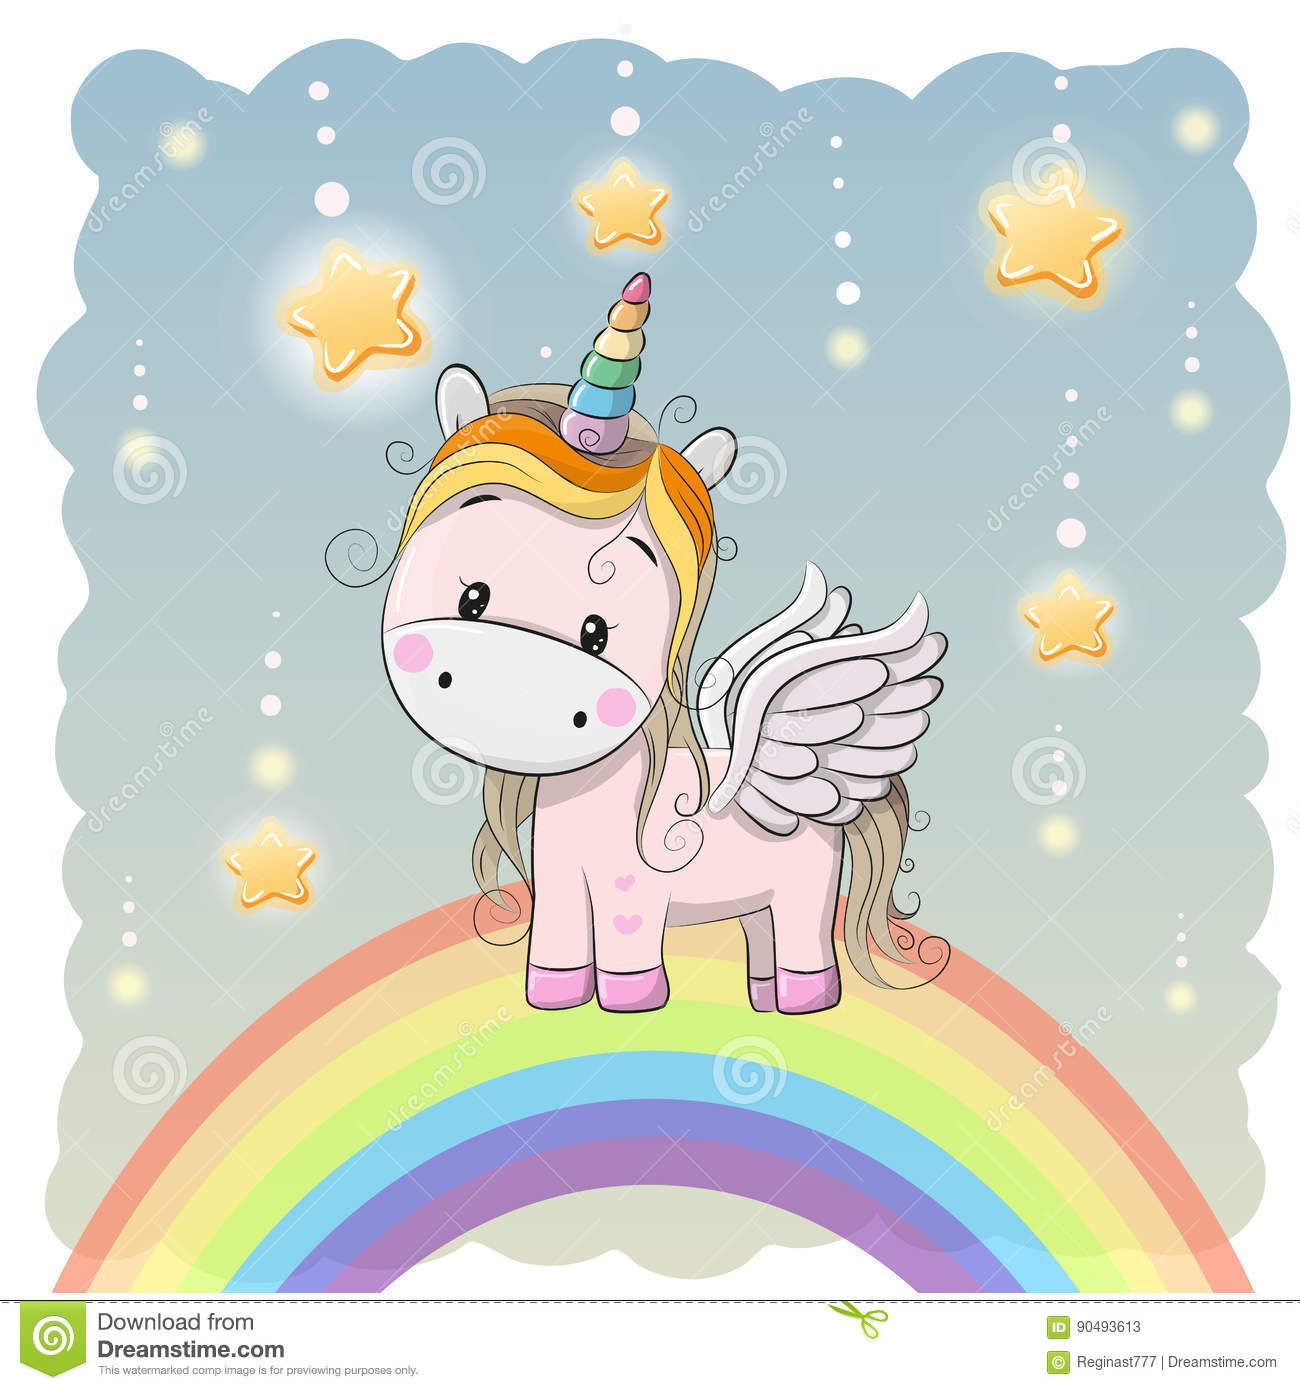 pin by mónica valenzuela on unicornio pinterest unicorns and